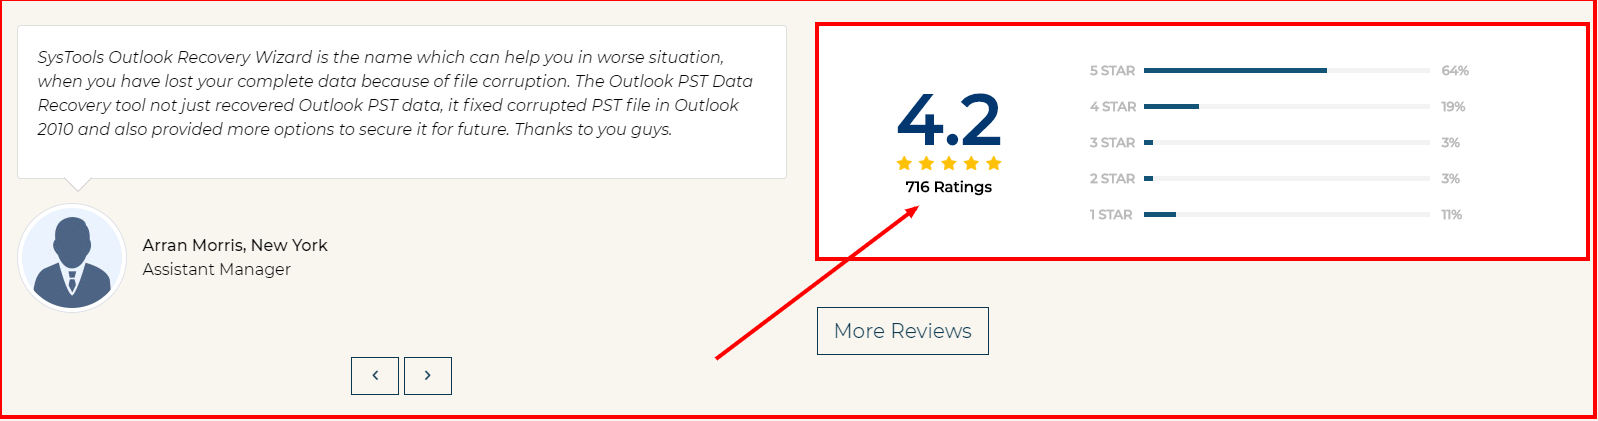 Outlook PST - Testimonials